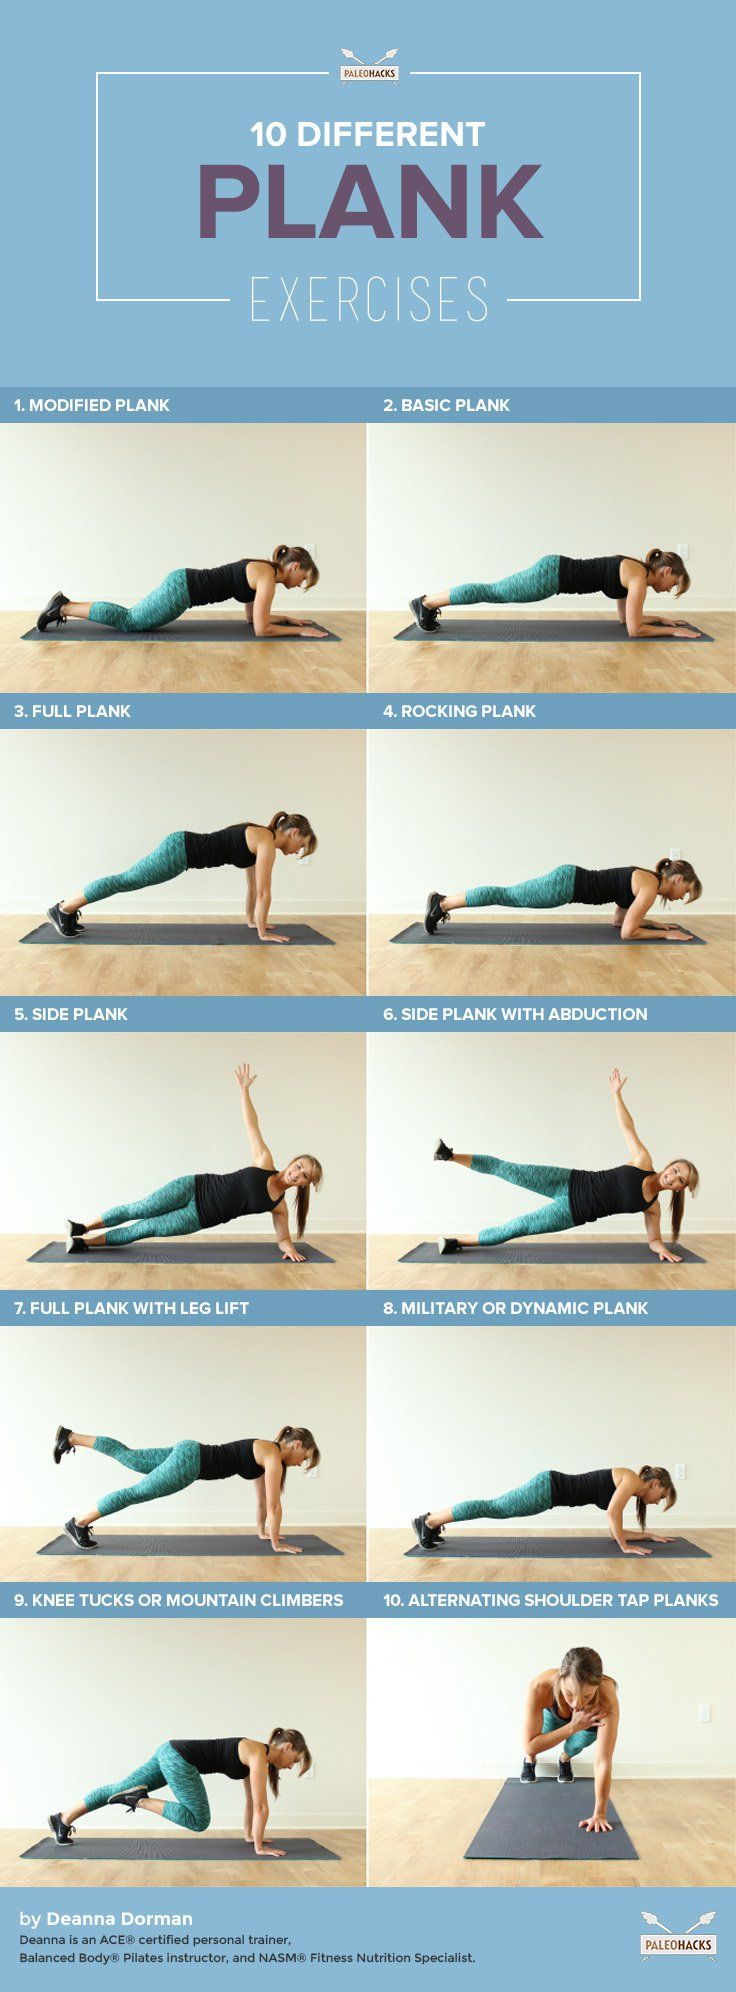 10 Different Plank Exercises For A Stronger Core